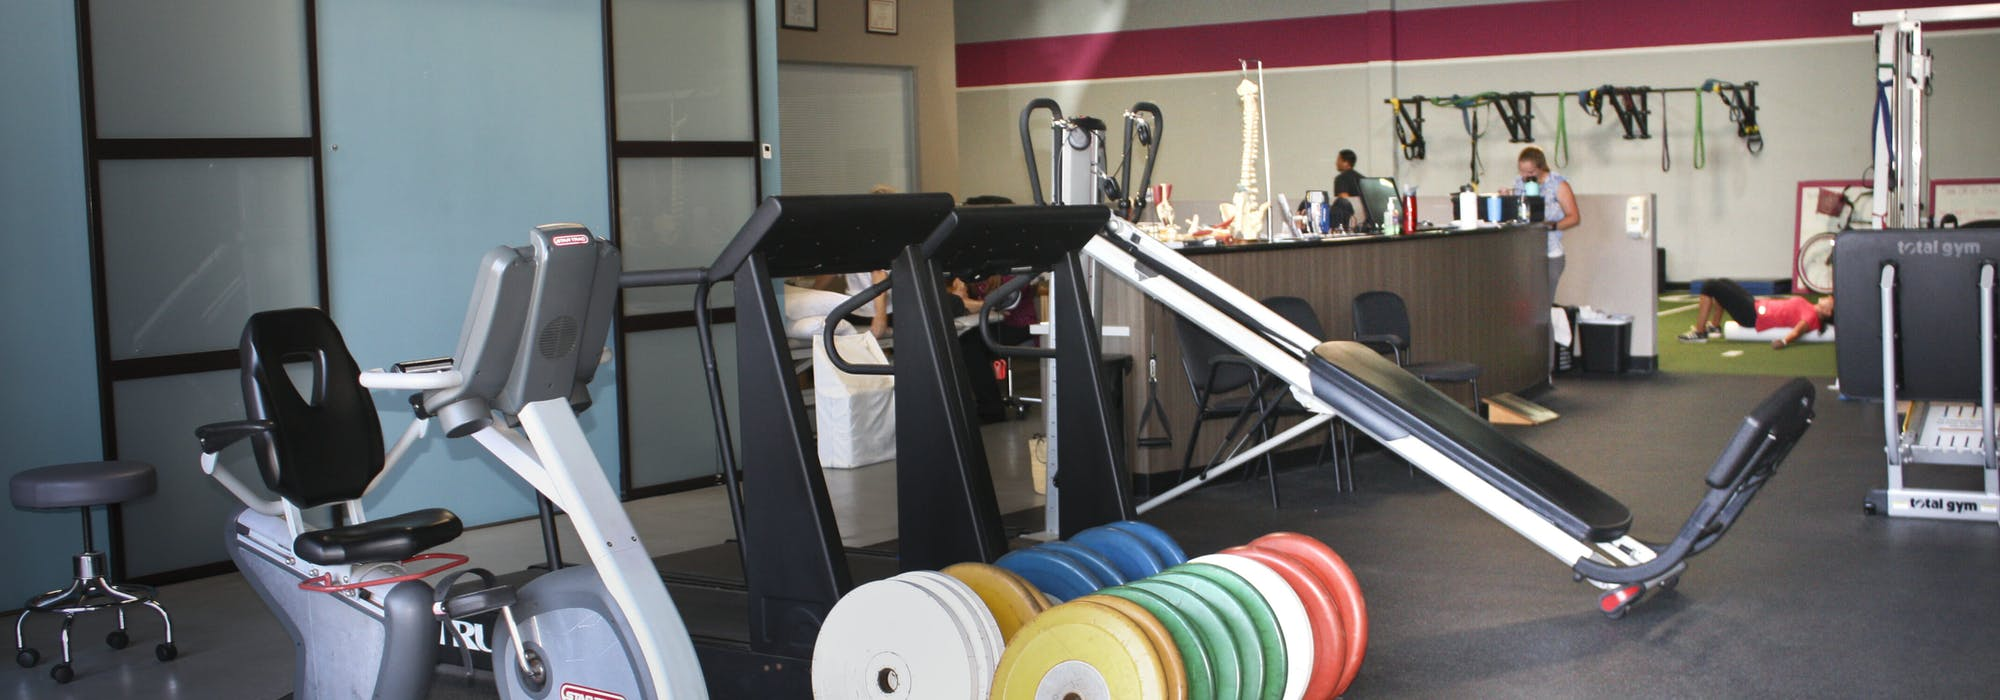 Board california physical therapy - Doctors Of Physical Therapy Many Are Board Certified